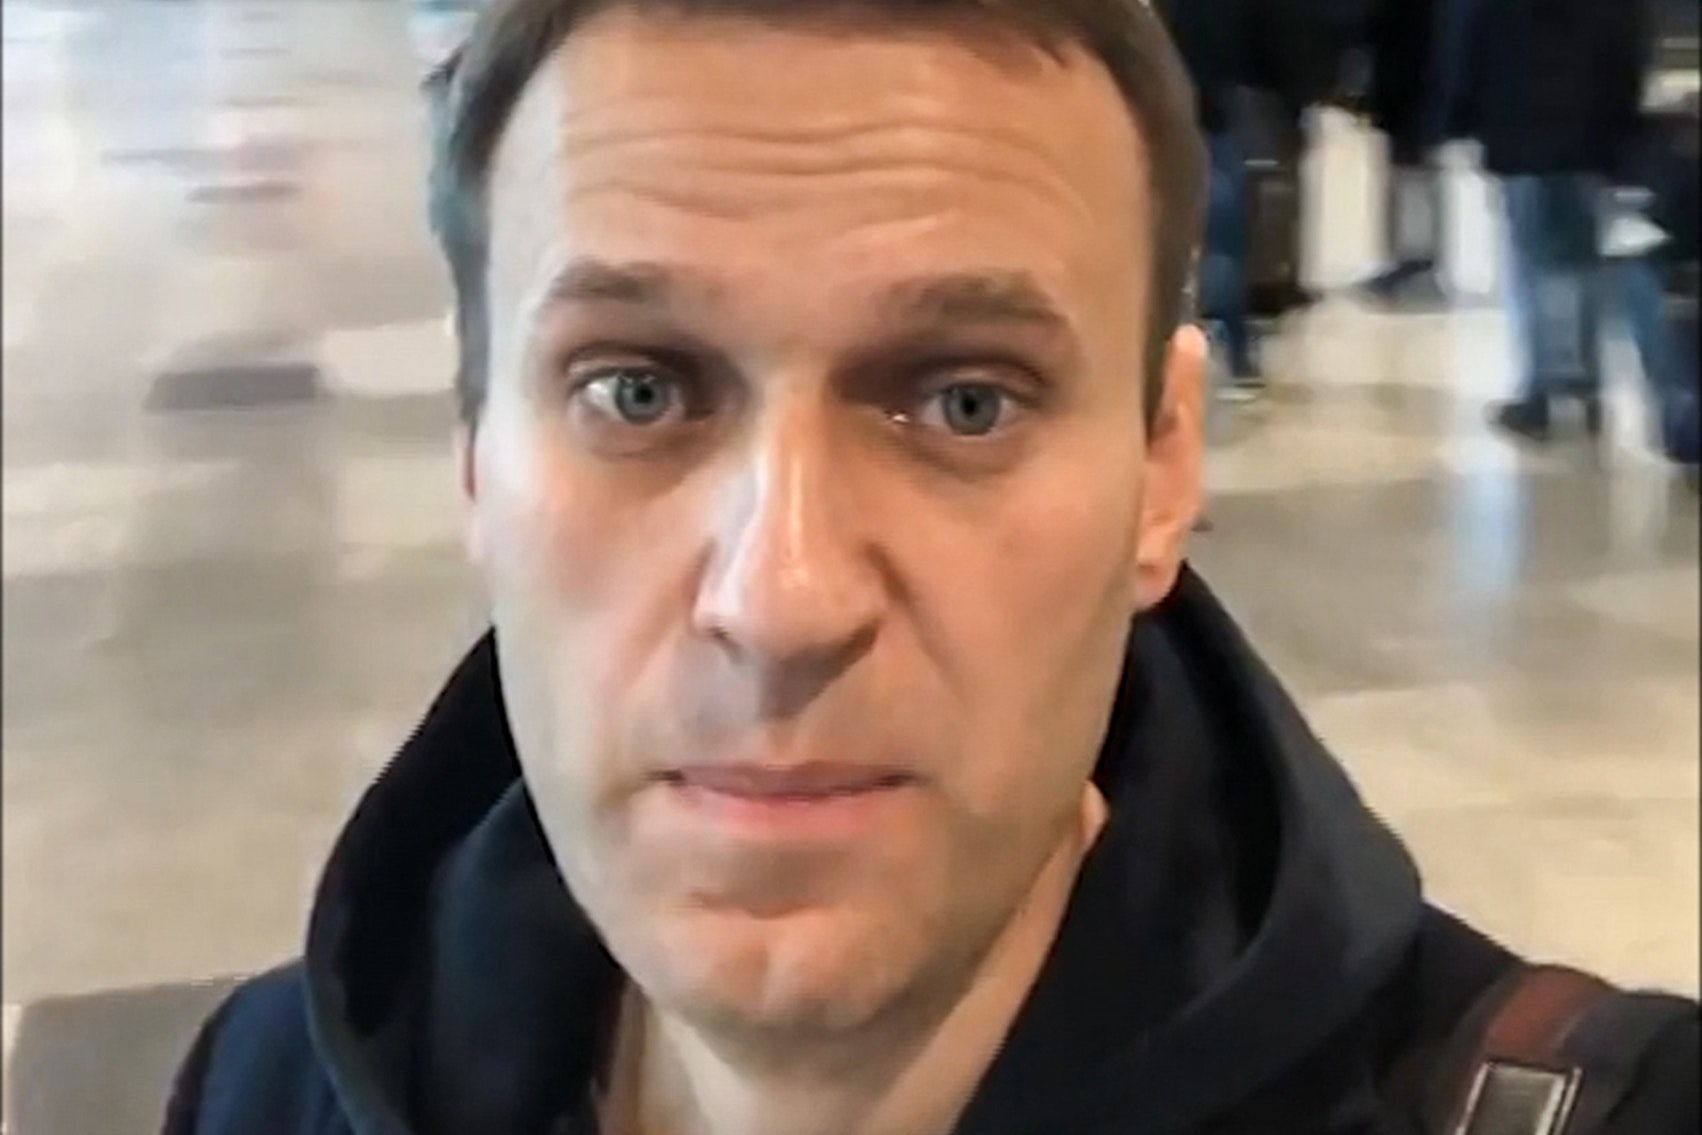 Russian opposition leader Navalny allowed to leave Russia